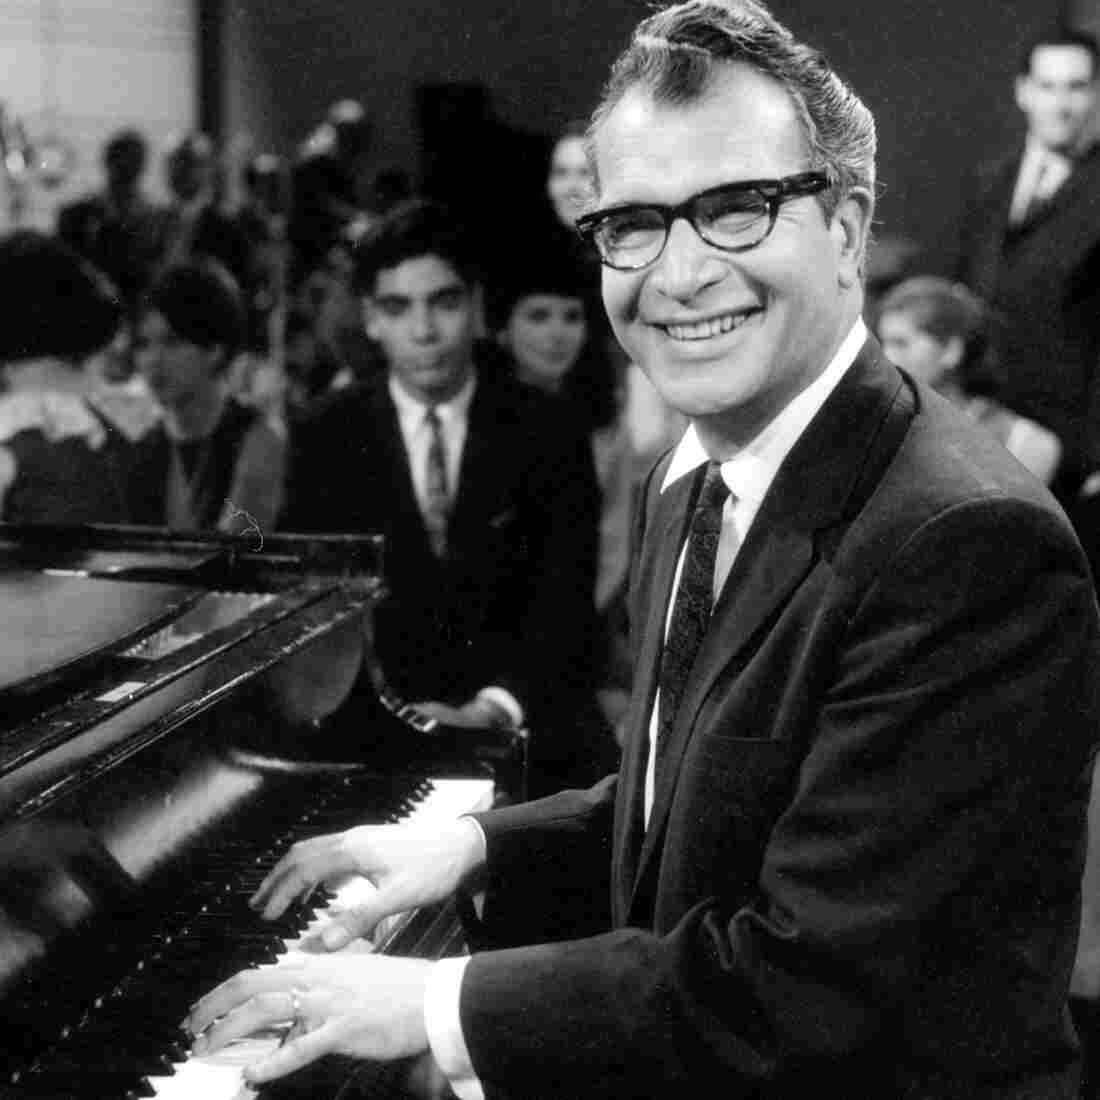 Remembering The Vital Force Of Jazz Pianist Dave Brubeck